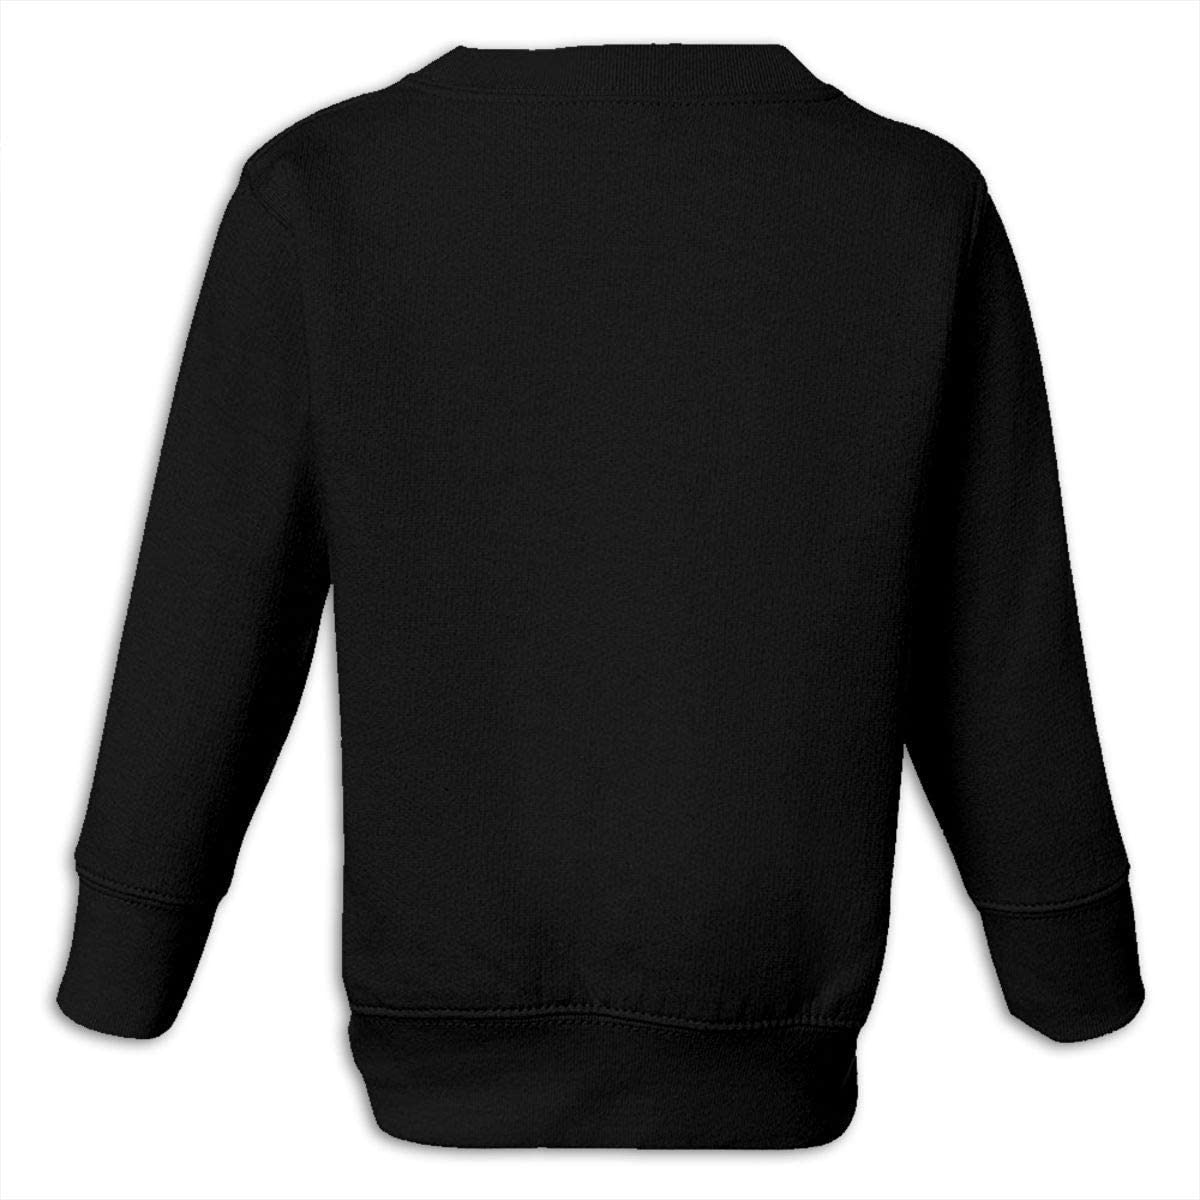 wudici Happy Halloween Boys Girls Pullover Sweaters Crewneck Sweatshirts Clothes for 2-6 Years Old Children